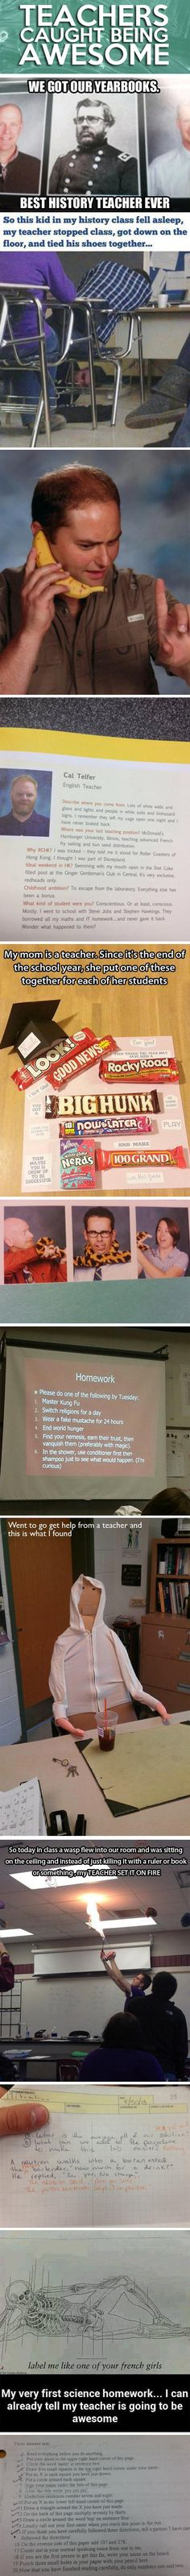 funny-awesome-teachers-compilation  I hope to be a teacher like this one day!